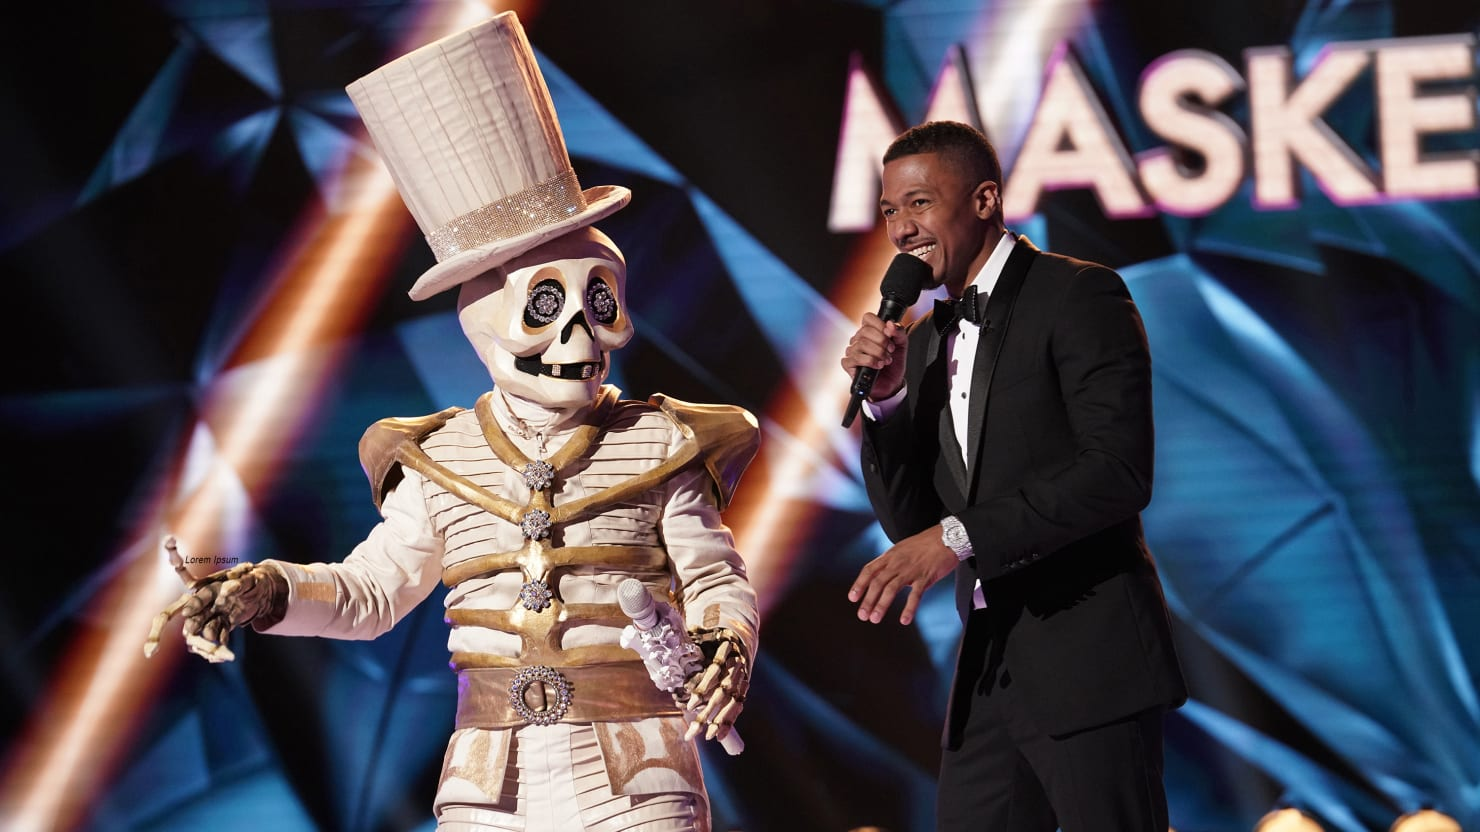 Clueless Judges Ensure 'The Masked Singer' Is Hilarious